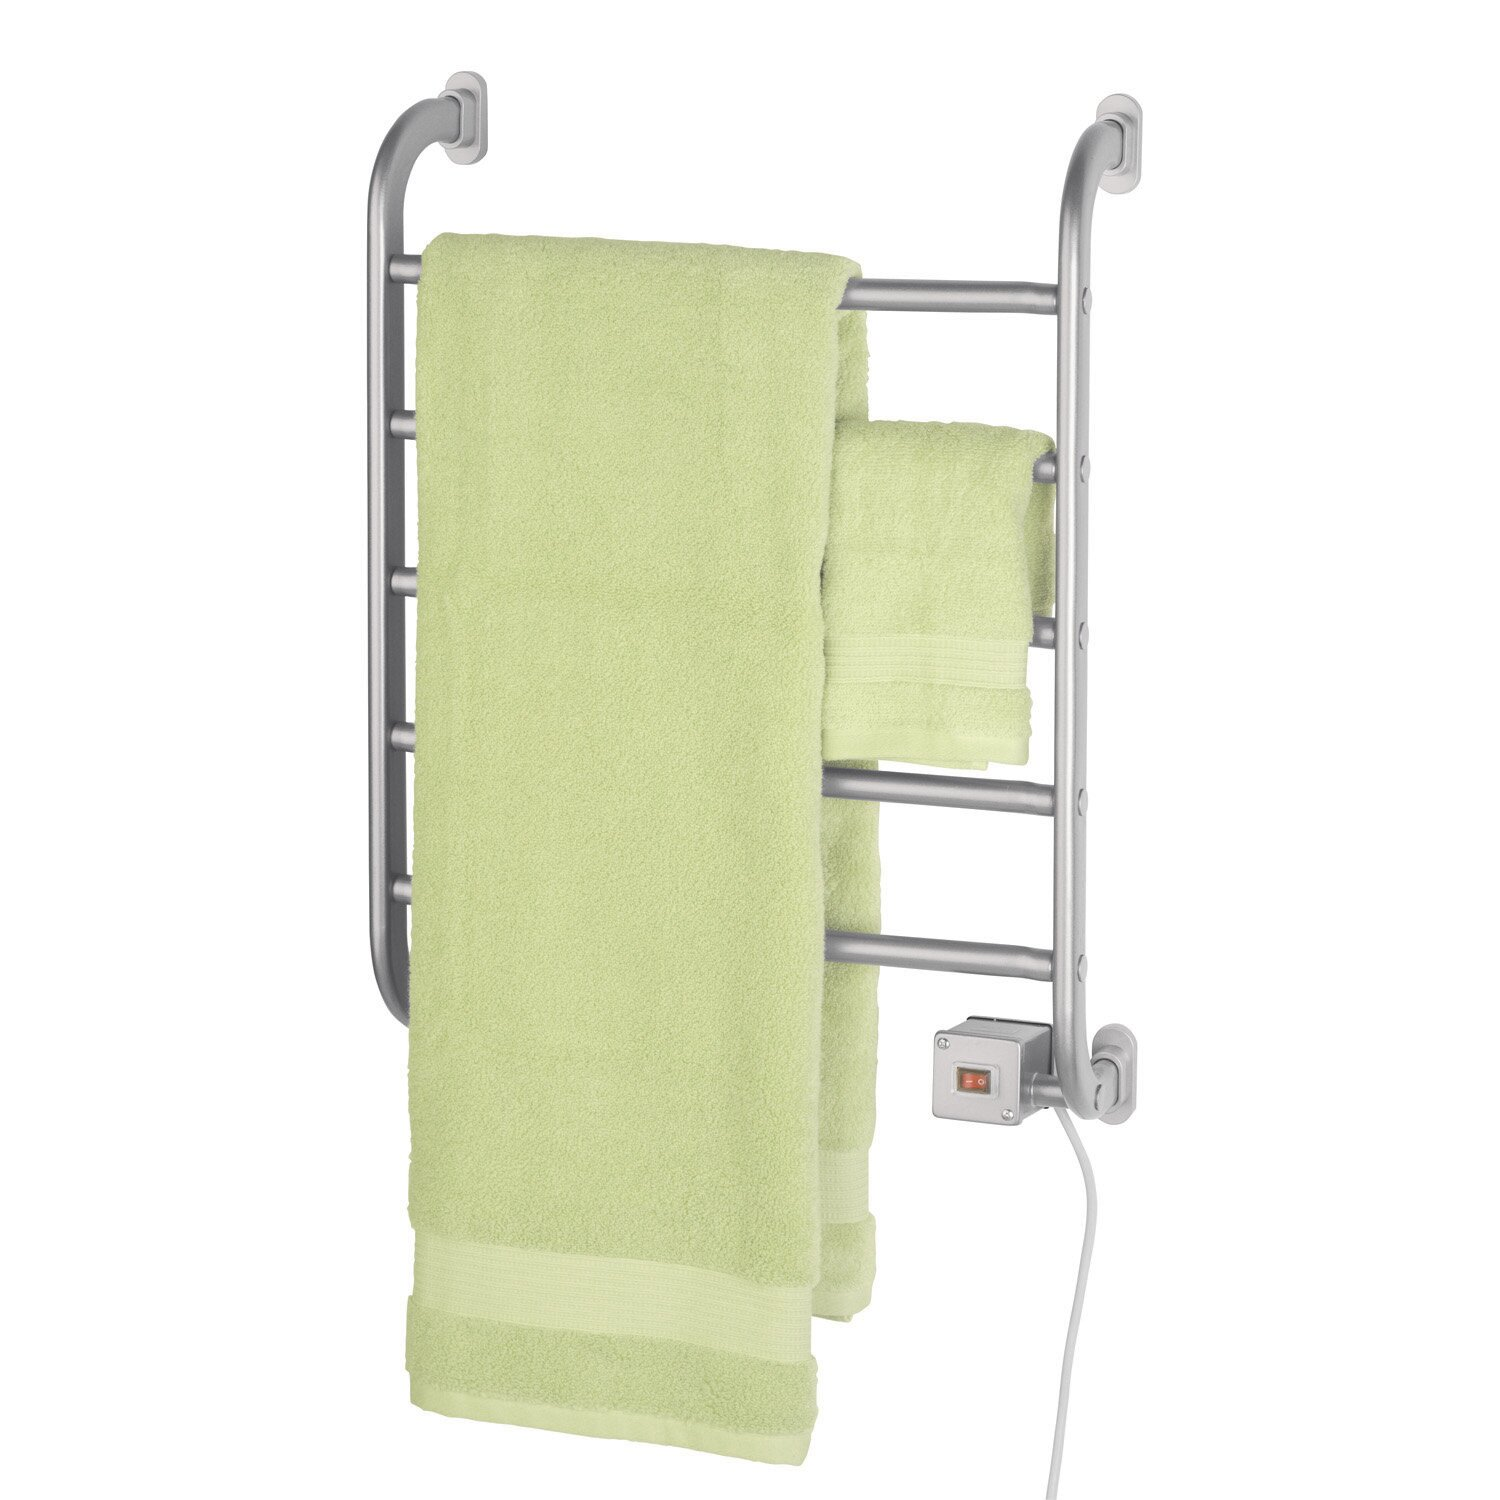 Warmrails Regent Wall Mount Towel Warmer Rack Wayfair